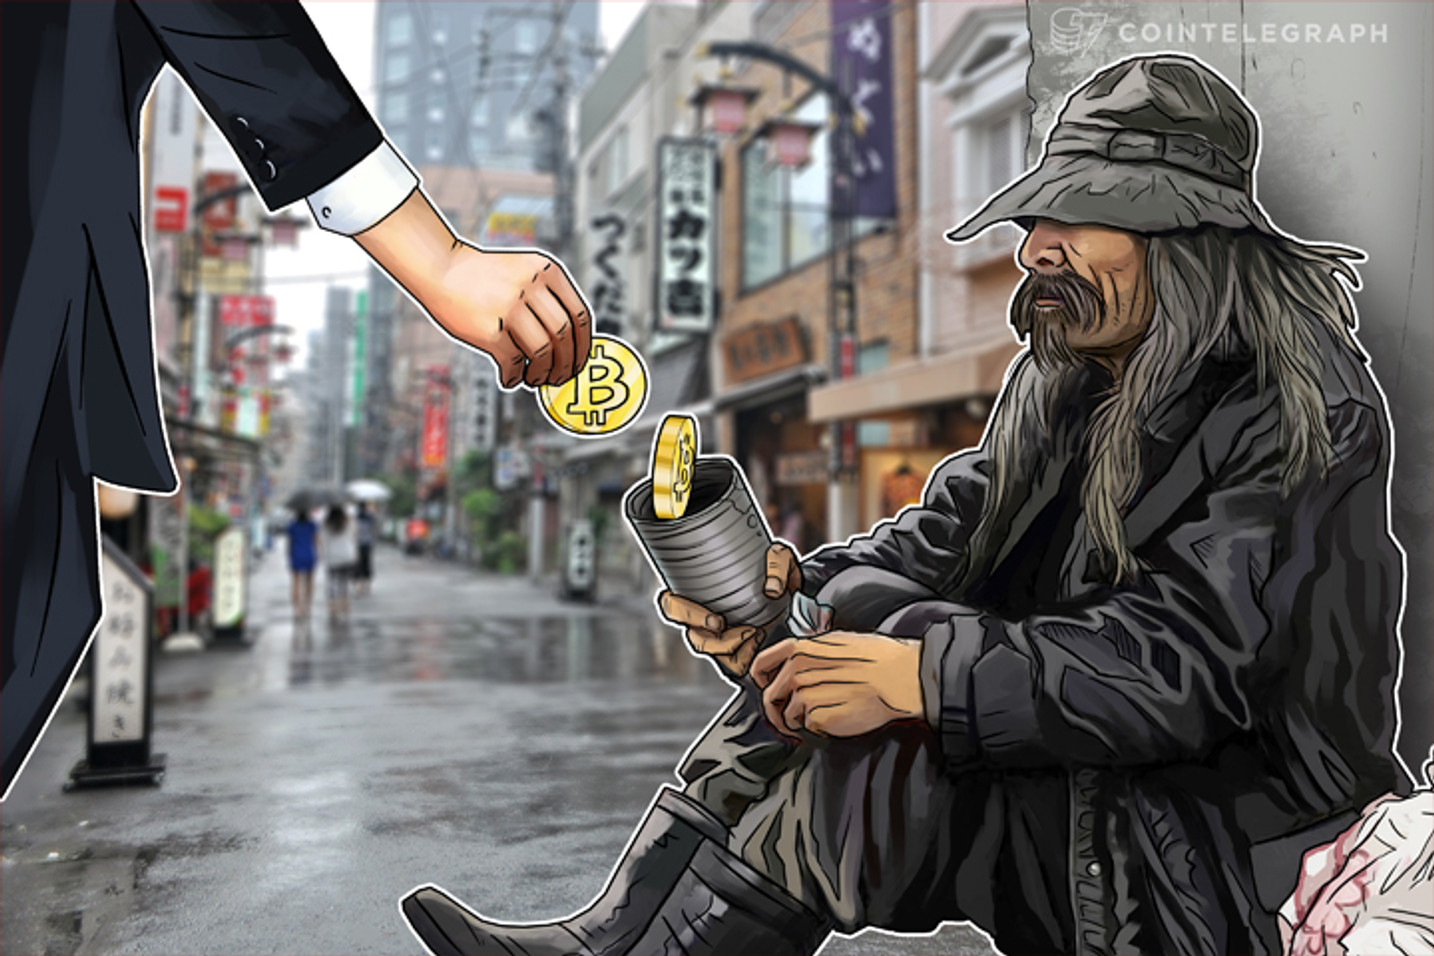 Bitcoin Makes Cherry Blossom: Japanese City Starts Accepting Bitcoin Donations